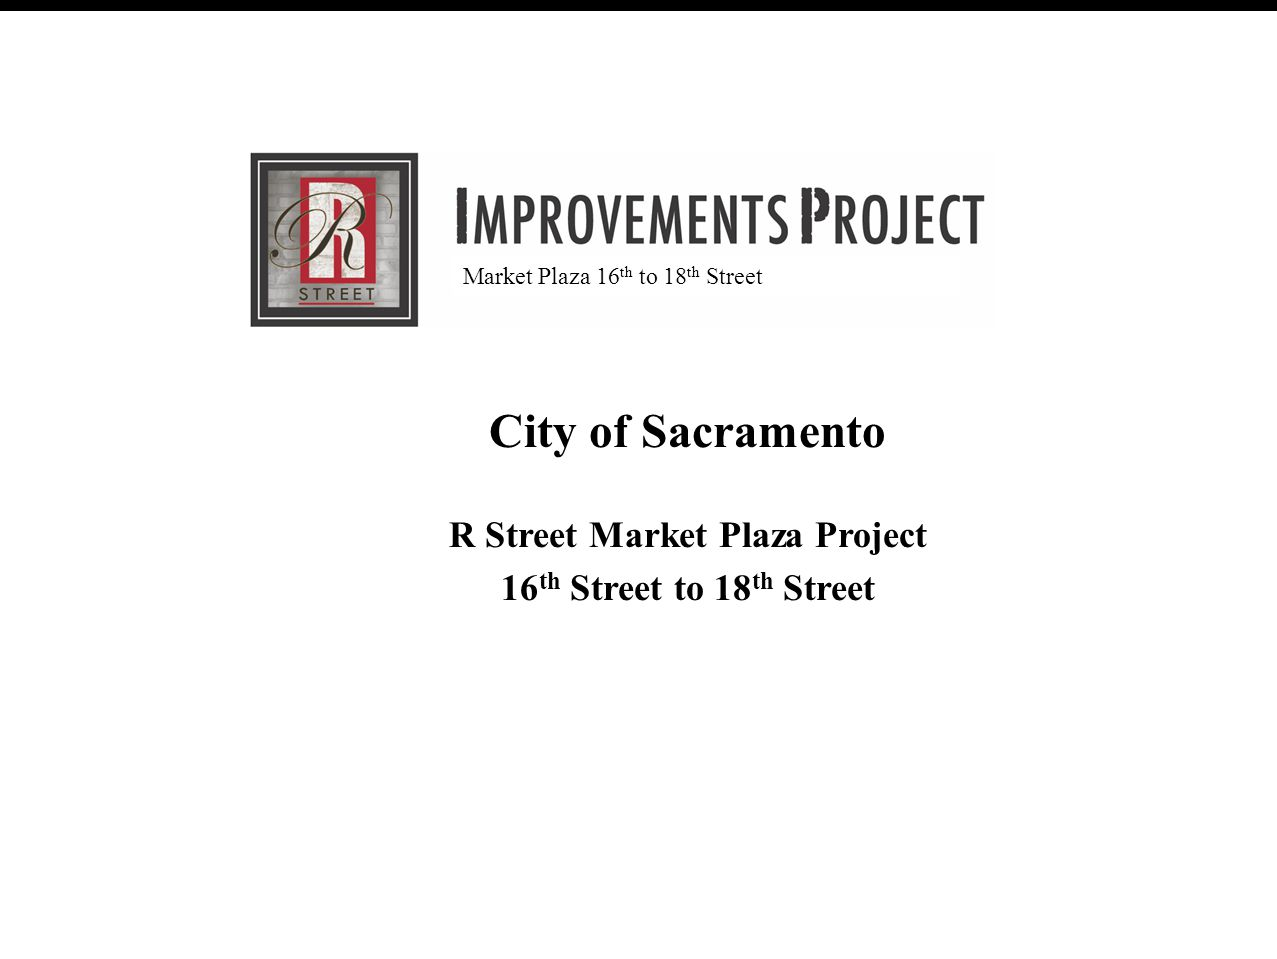 R Street Improvement Project (30% Review Meeting) February 28, 2007 August 20, 2008 City of Sacramento R Street Market Plaza Project 16 th Street to 18 th Street Market Plaza 16 th to 18 th Street